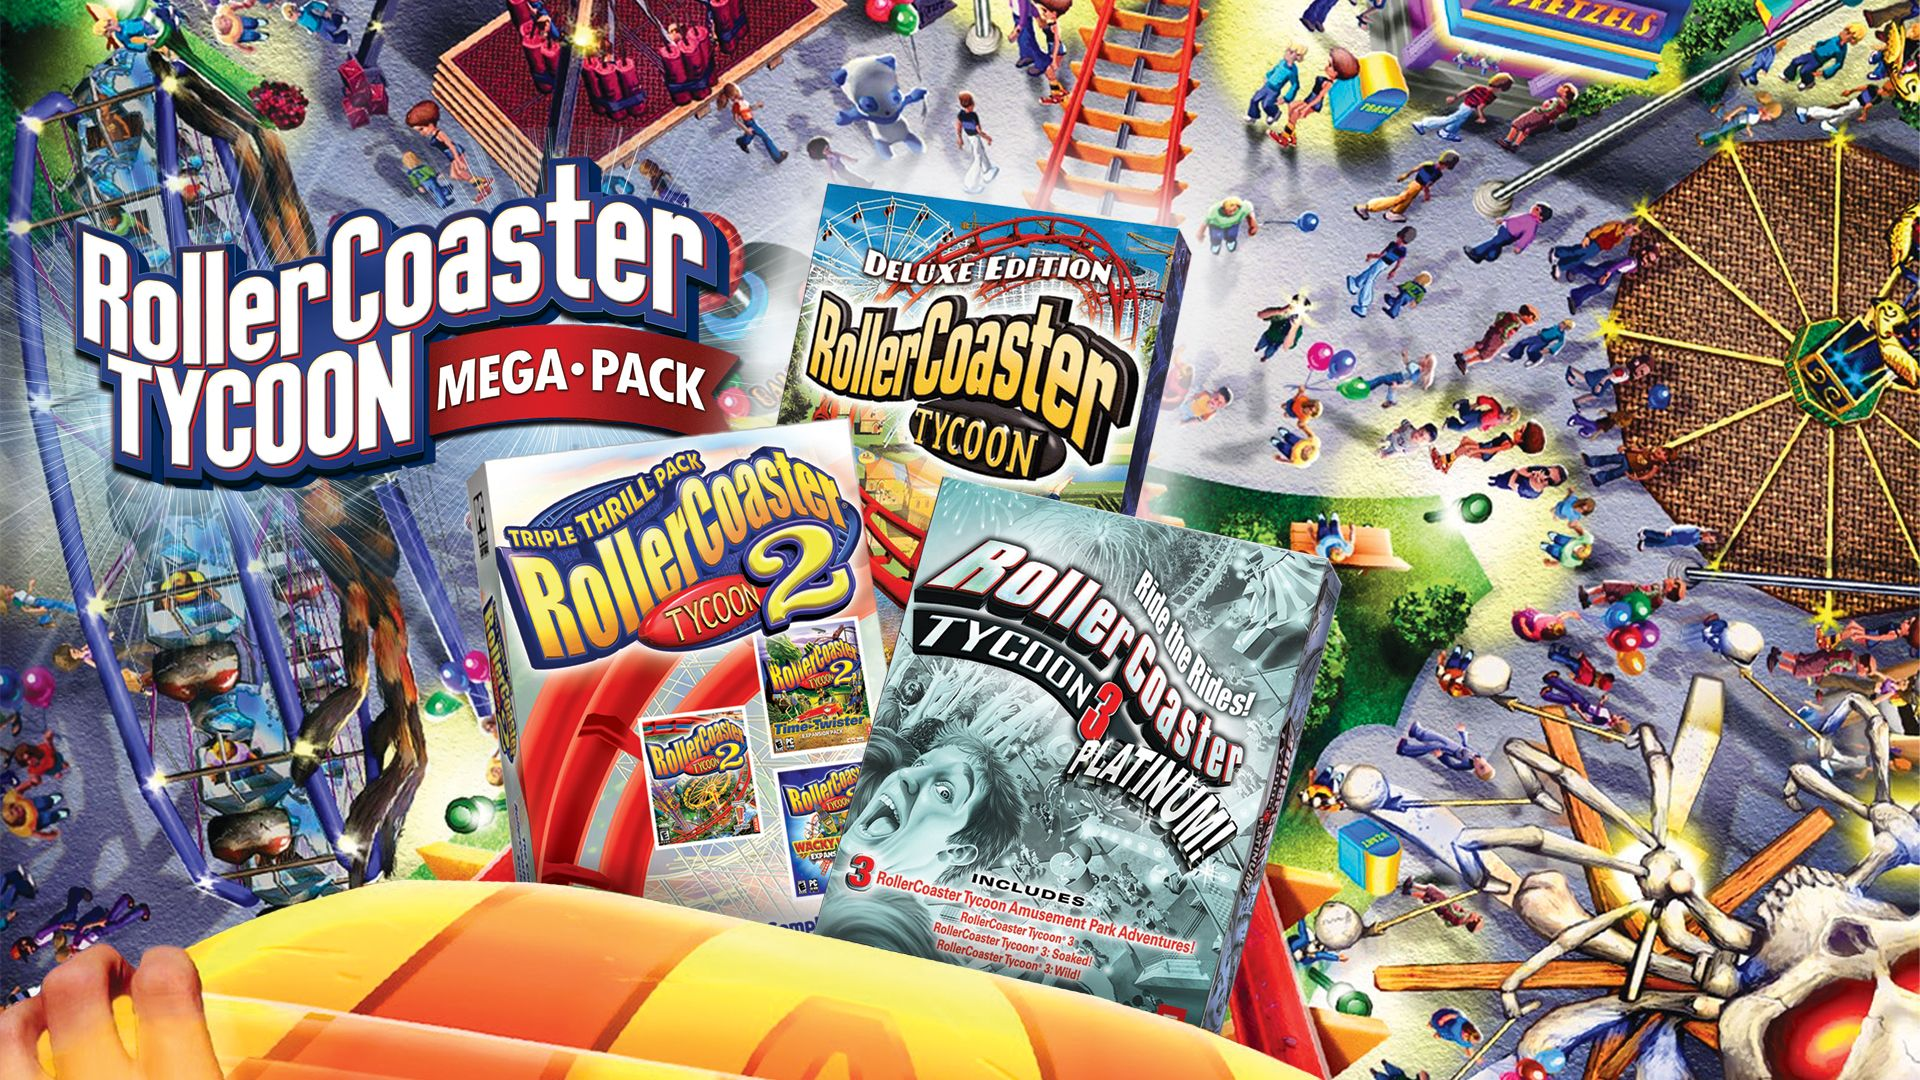 Rollercoaster tycoon 2: triple thrill pack game download for pc.